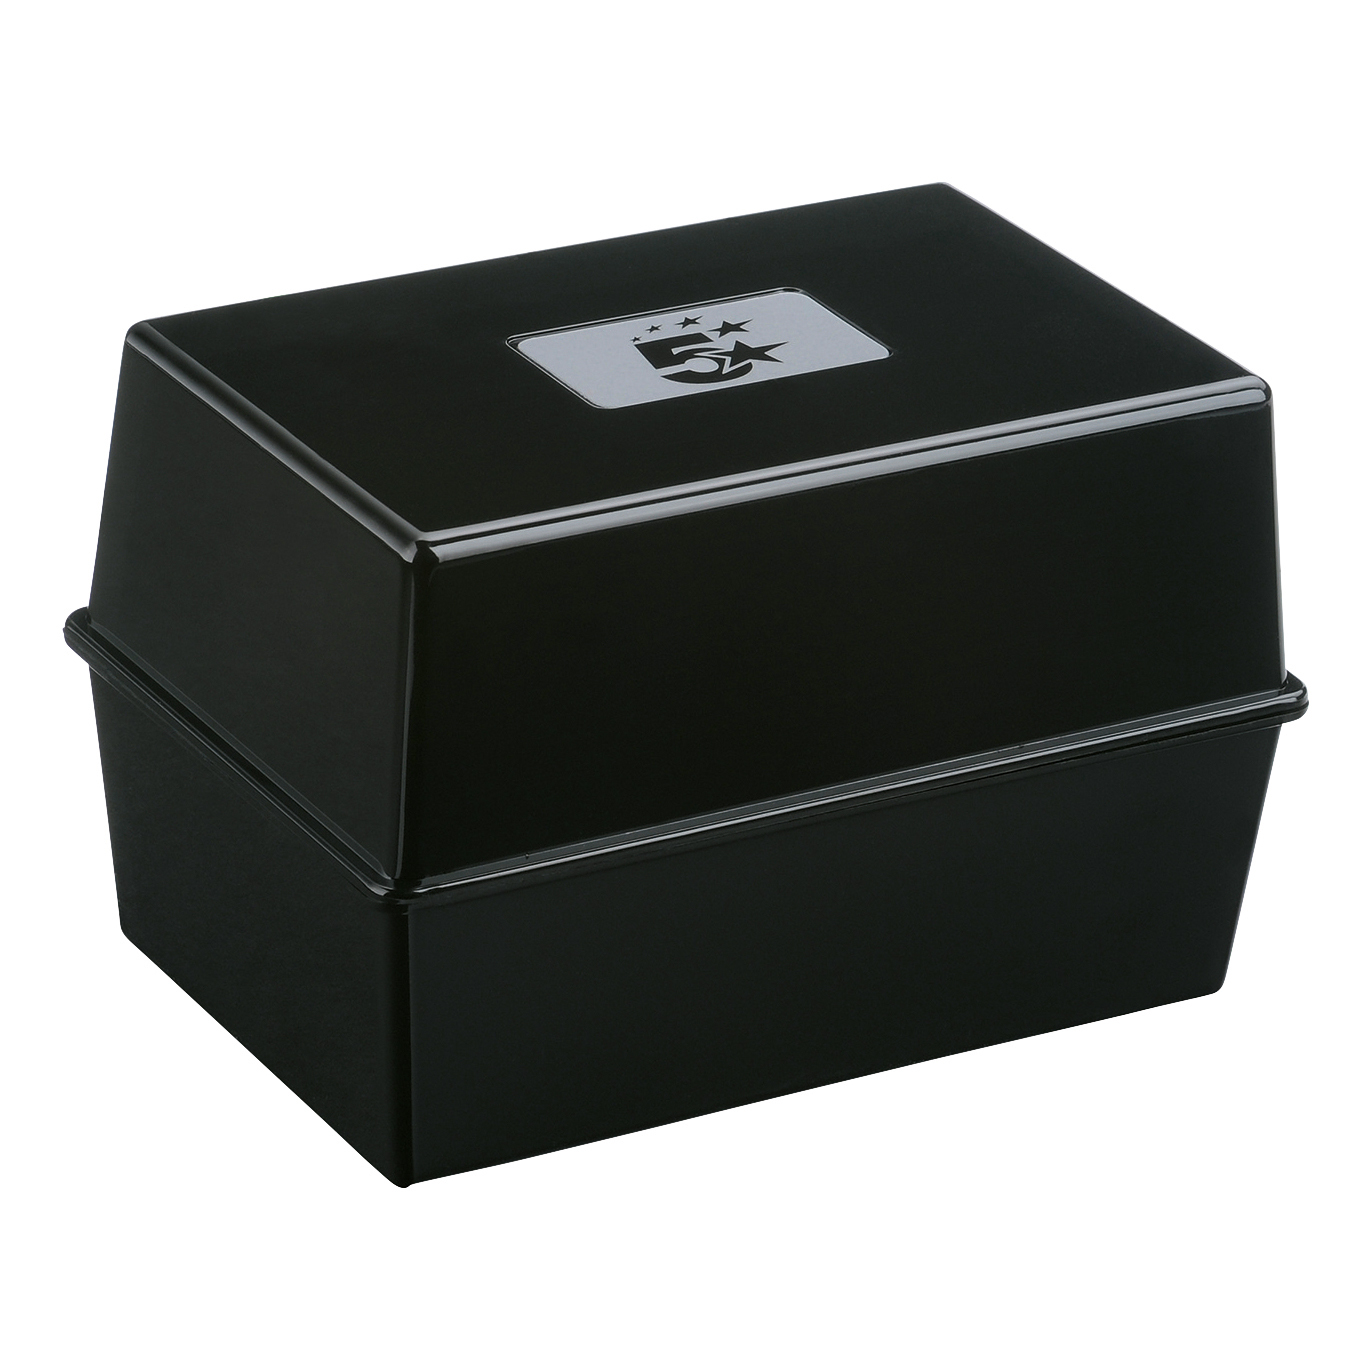 Storage 5 Star Office Card Index Box Capacity 250 Cards 5x3in 127x76mm Black